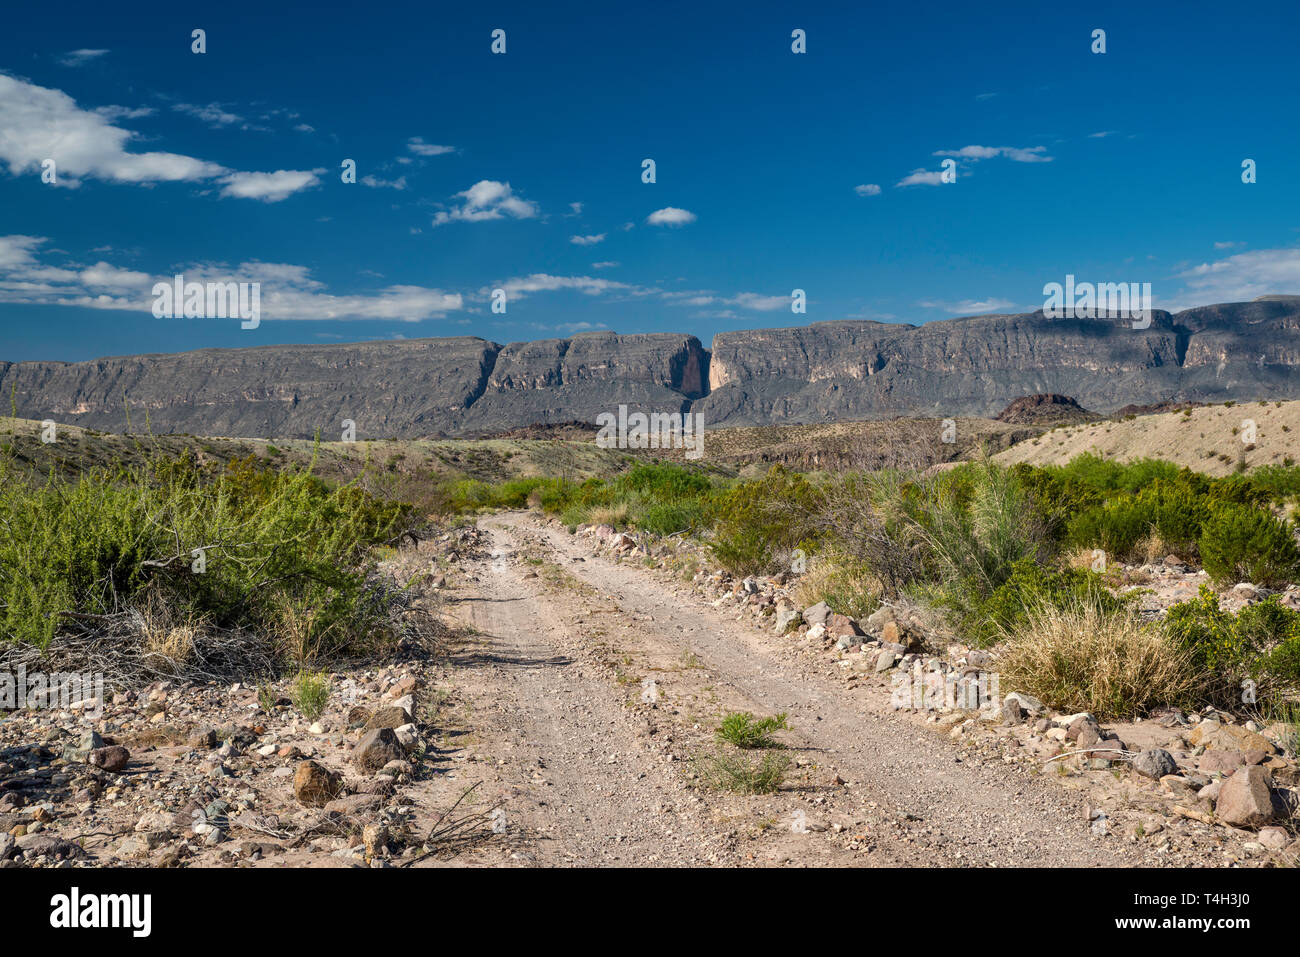 River Road, Sierra Ponce mesa in Mexico in distance, Chihuahuan Desert borderland, Big Bend National Park, Texas, USA Stock Photo